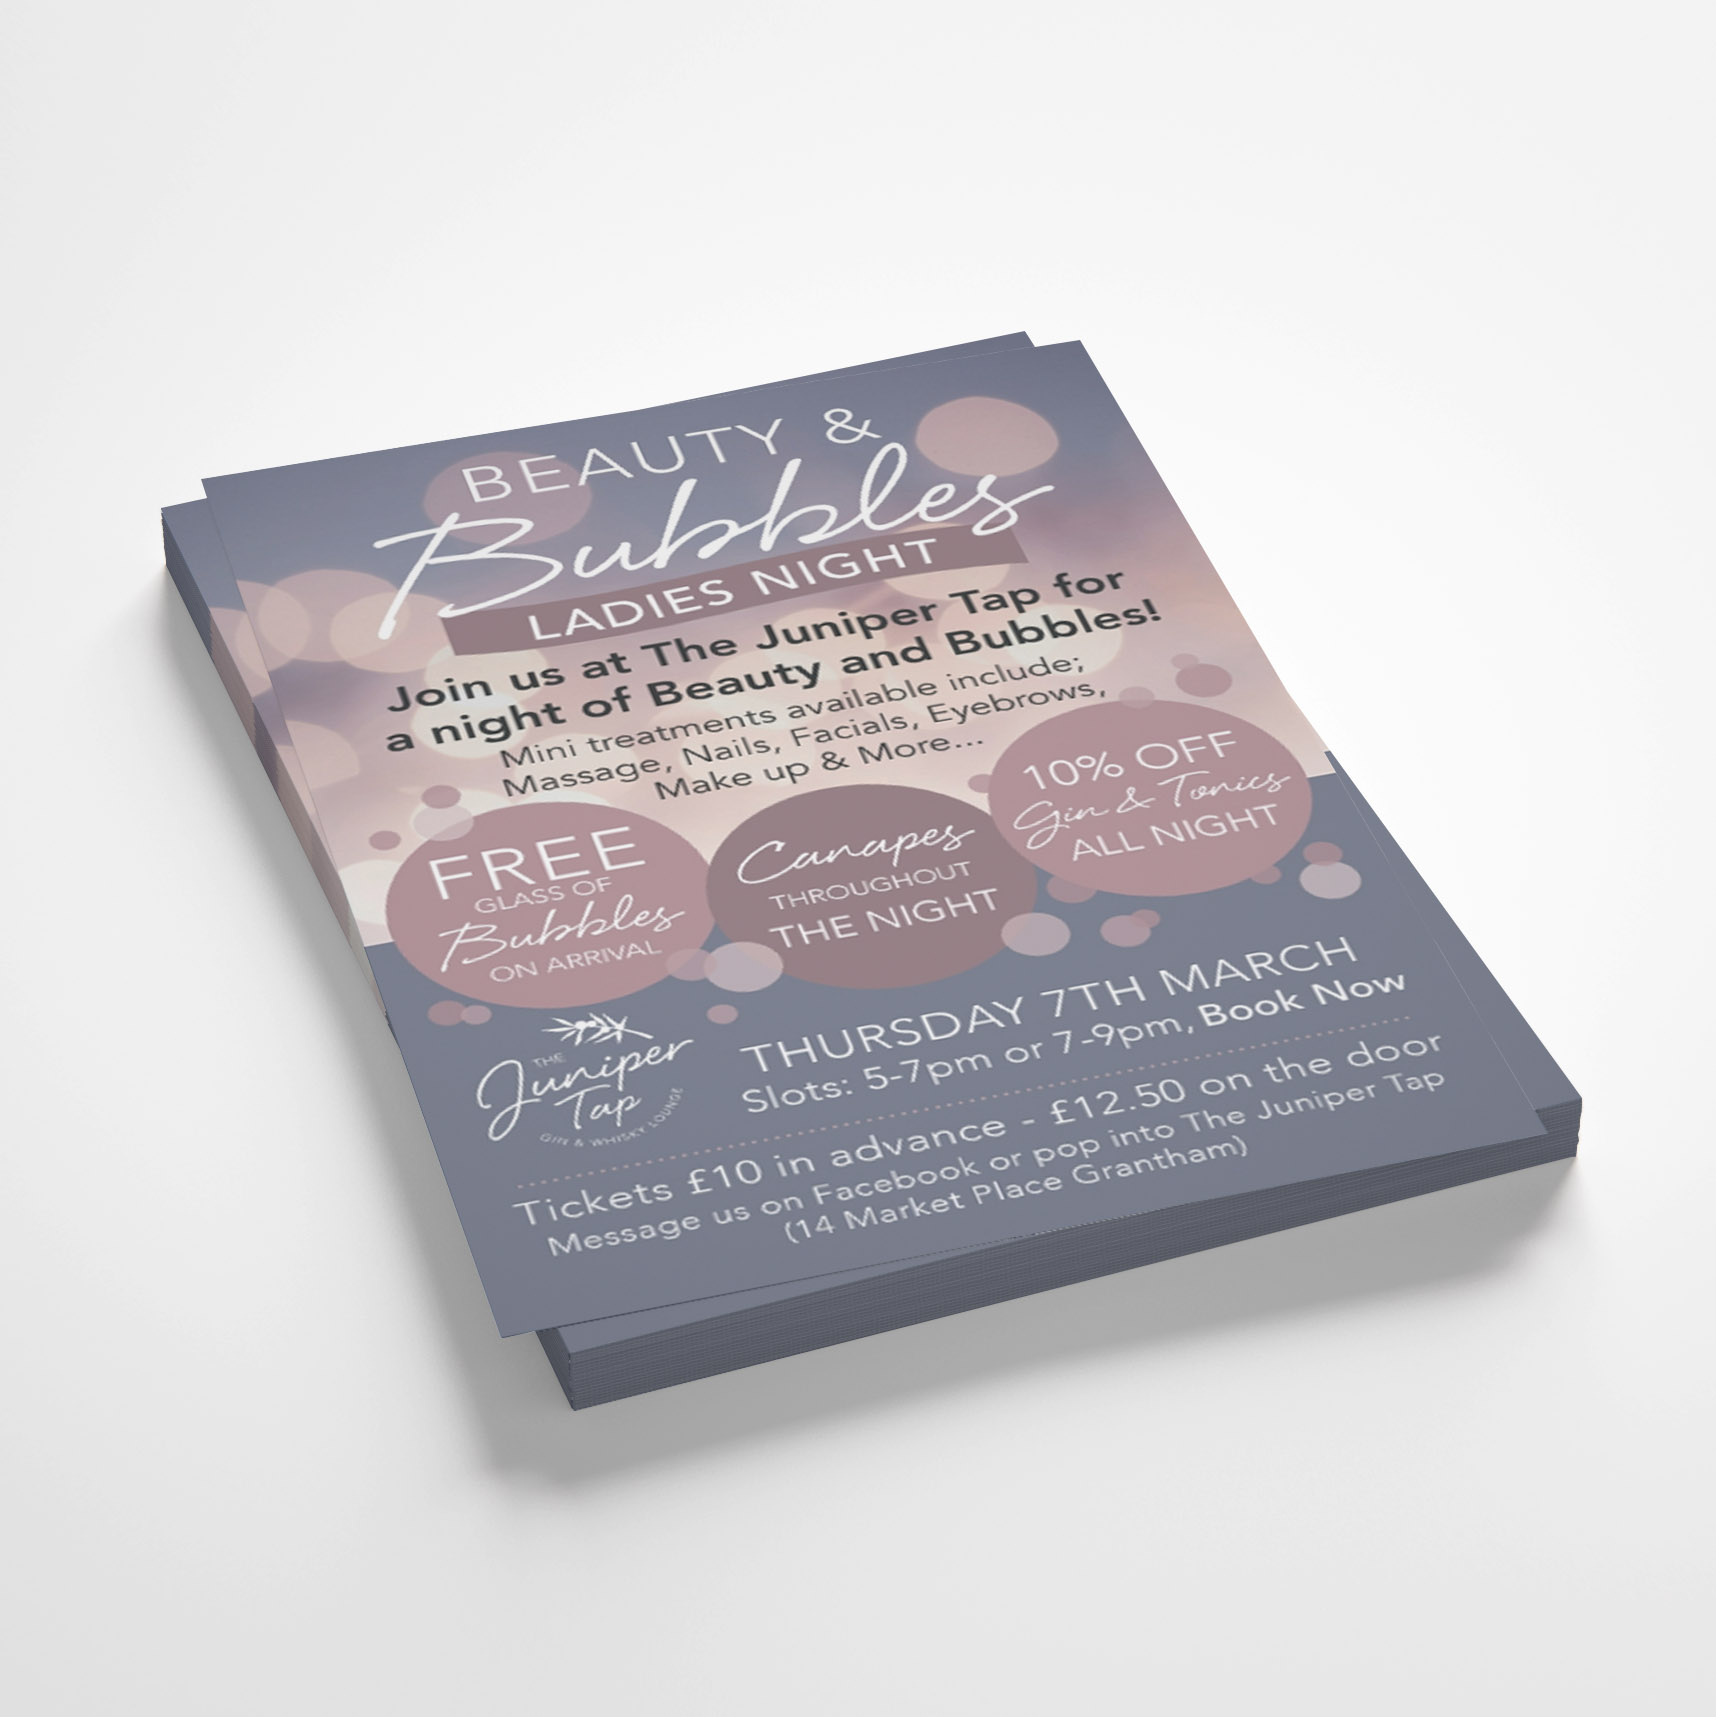 Leaflets for Beauty and Bubbles event